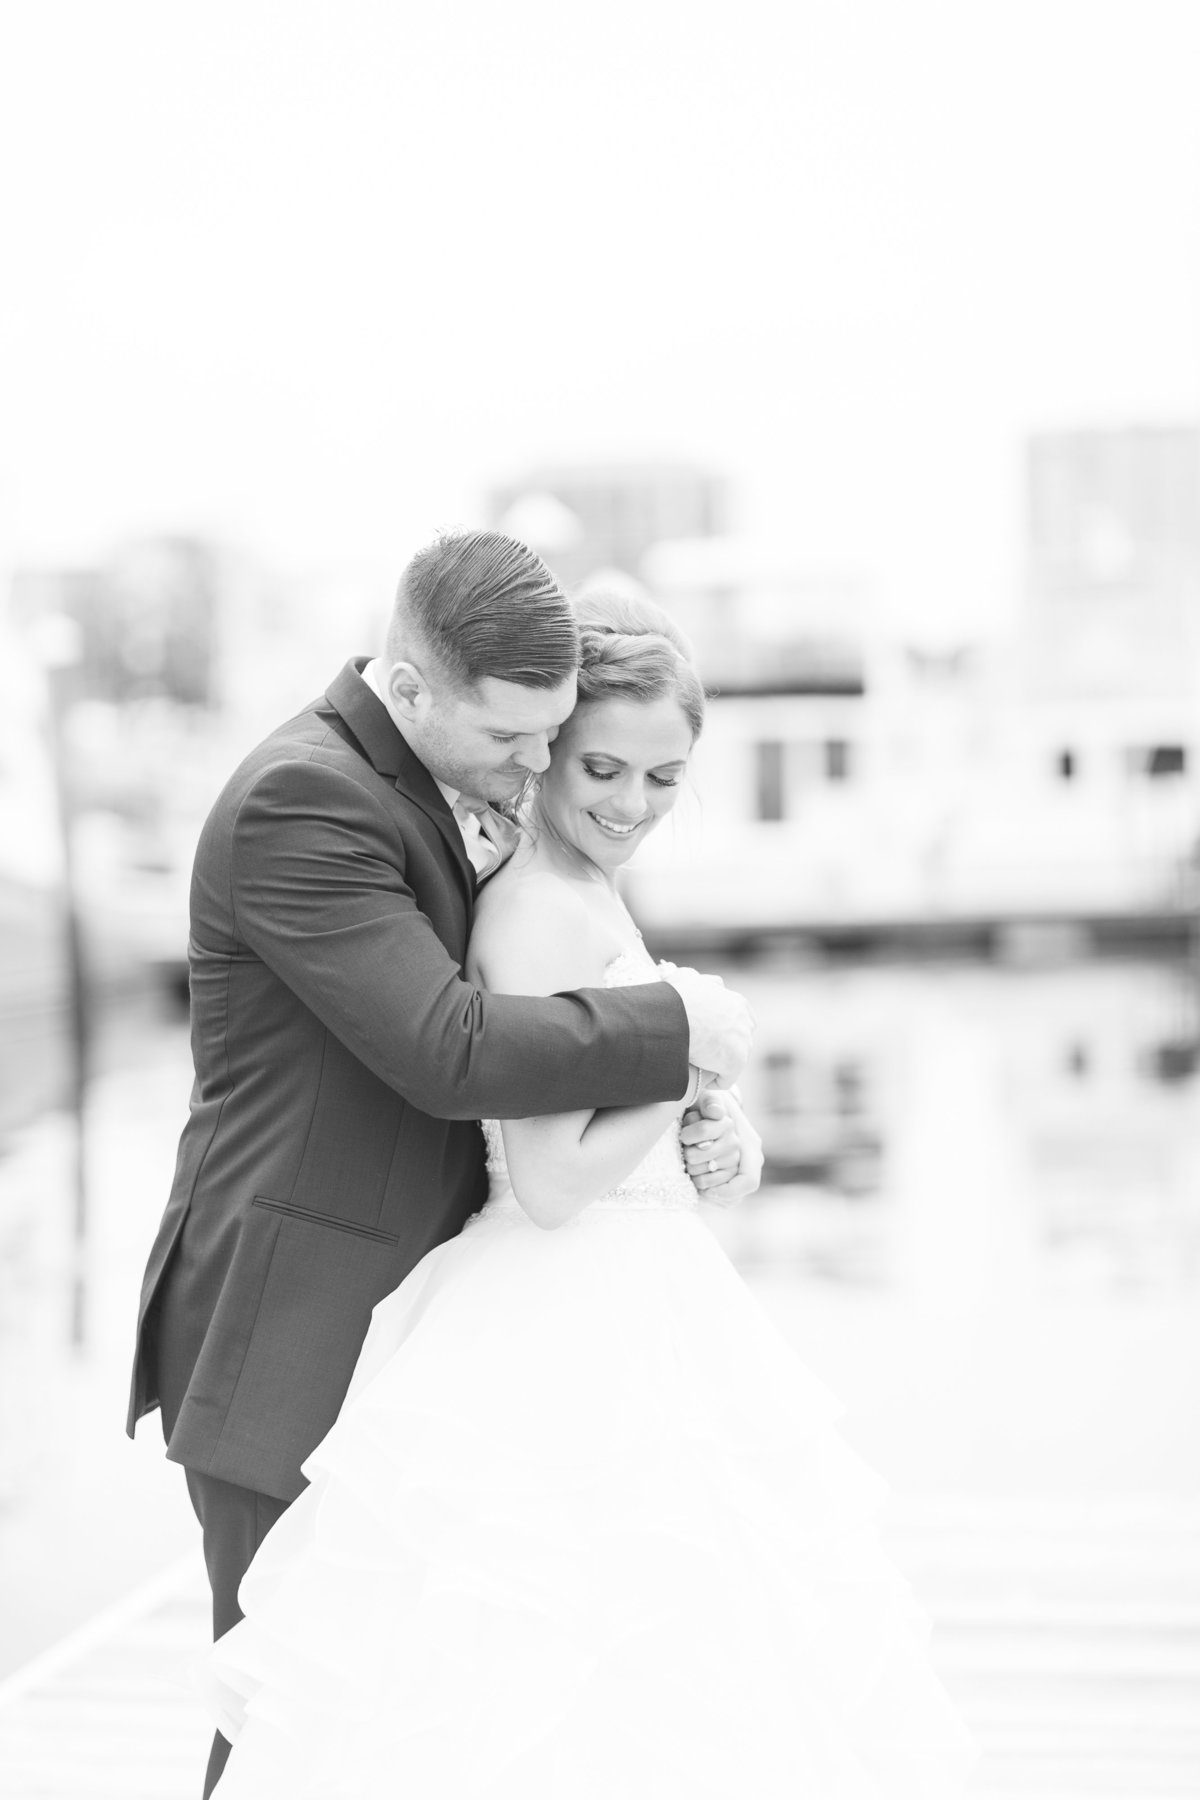 classic black and white image of bride and groom embracing